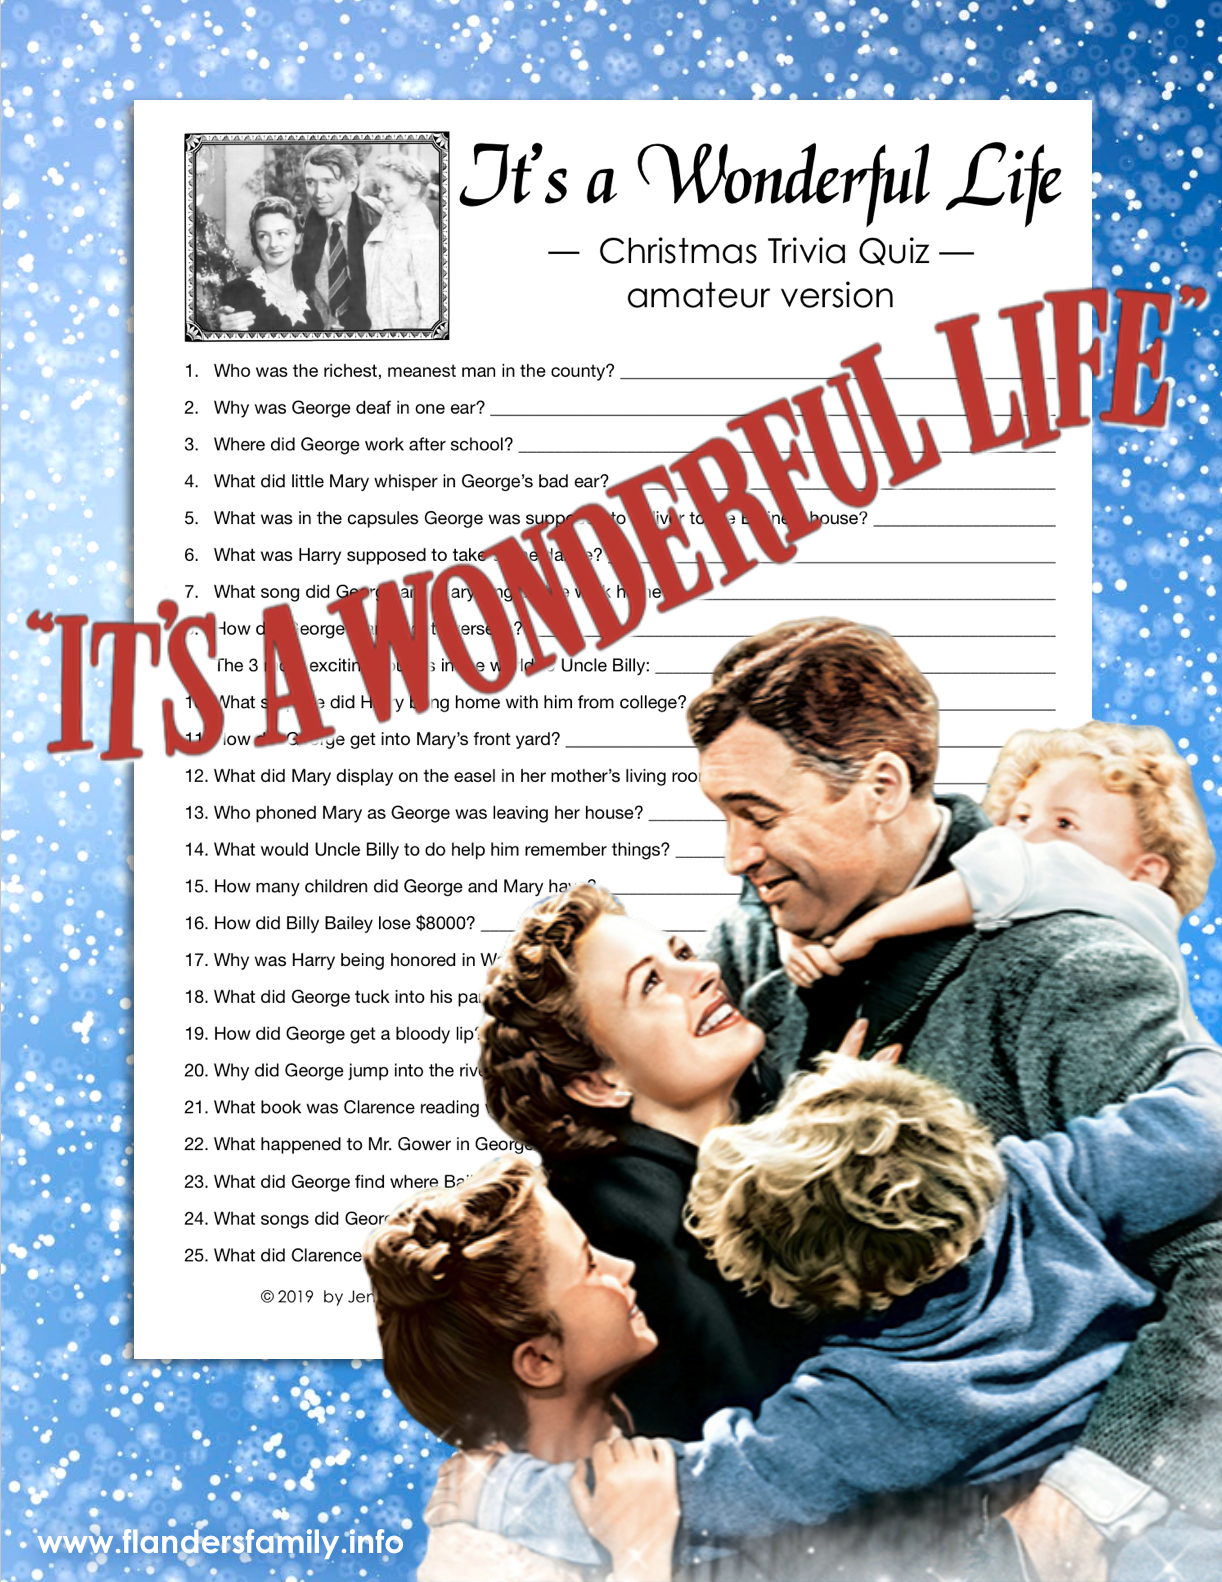 It's a Wonderful Life Movie Trivia